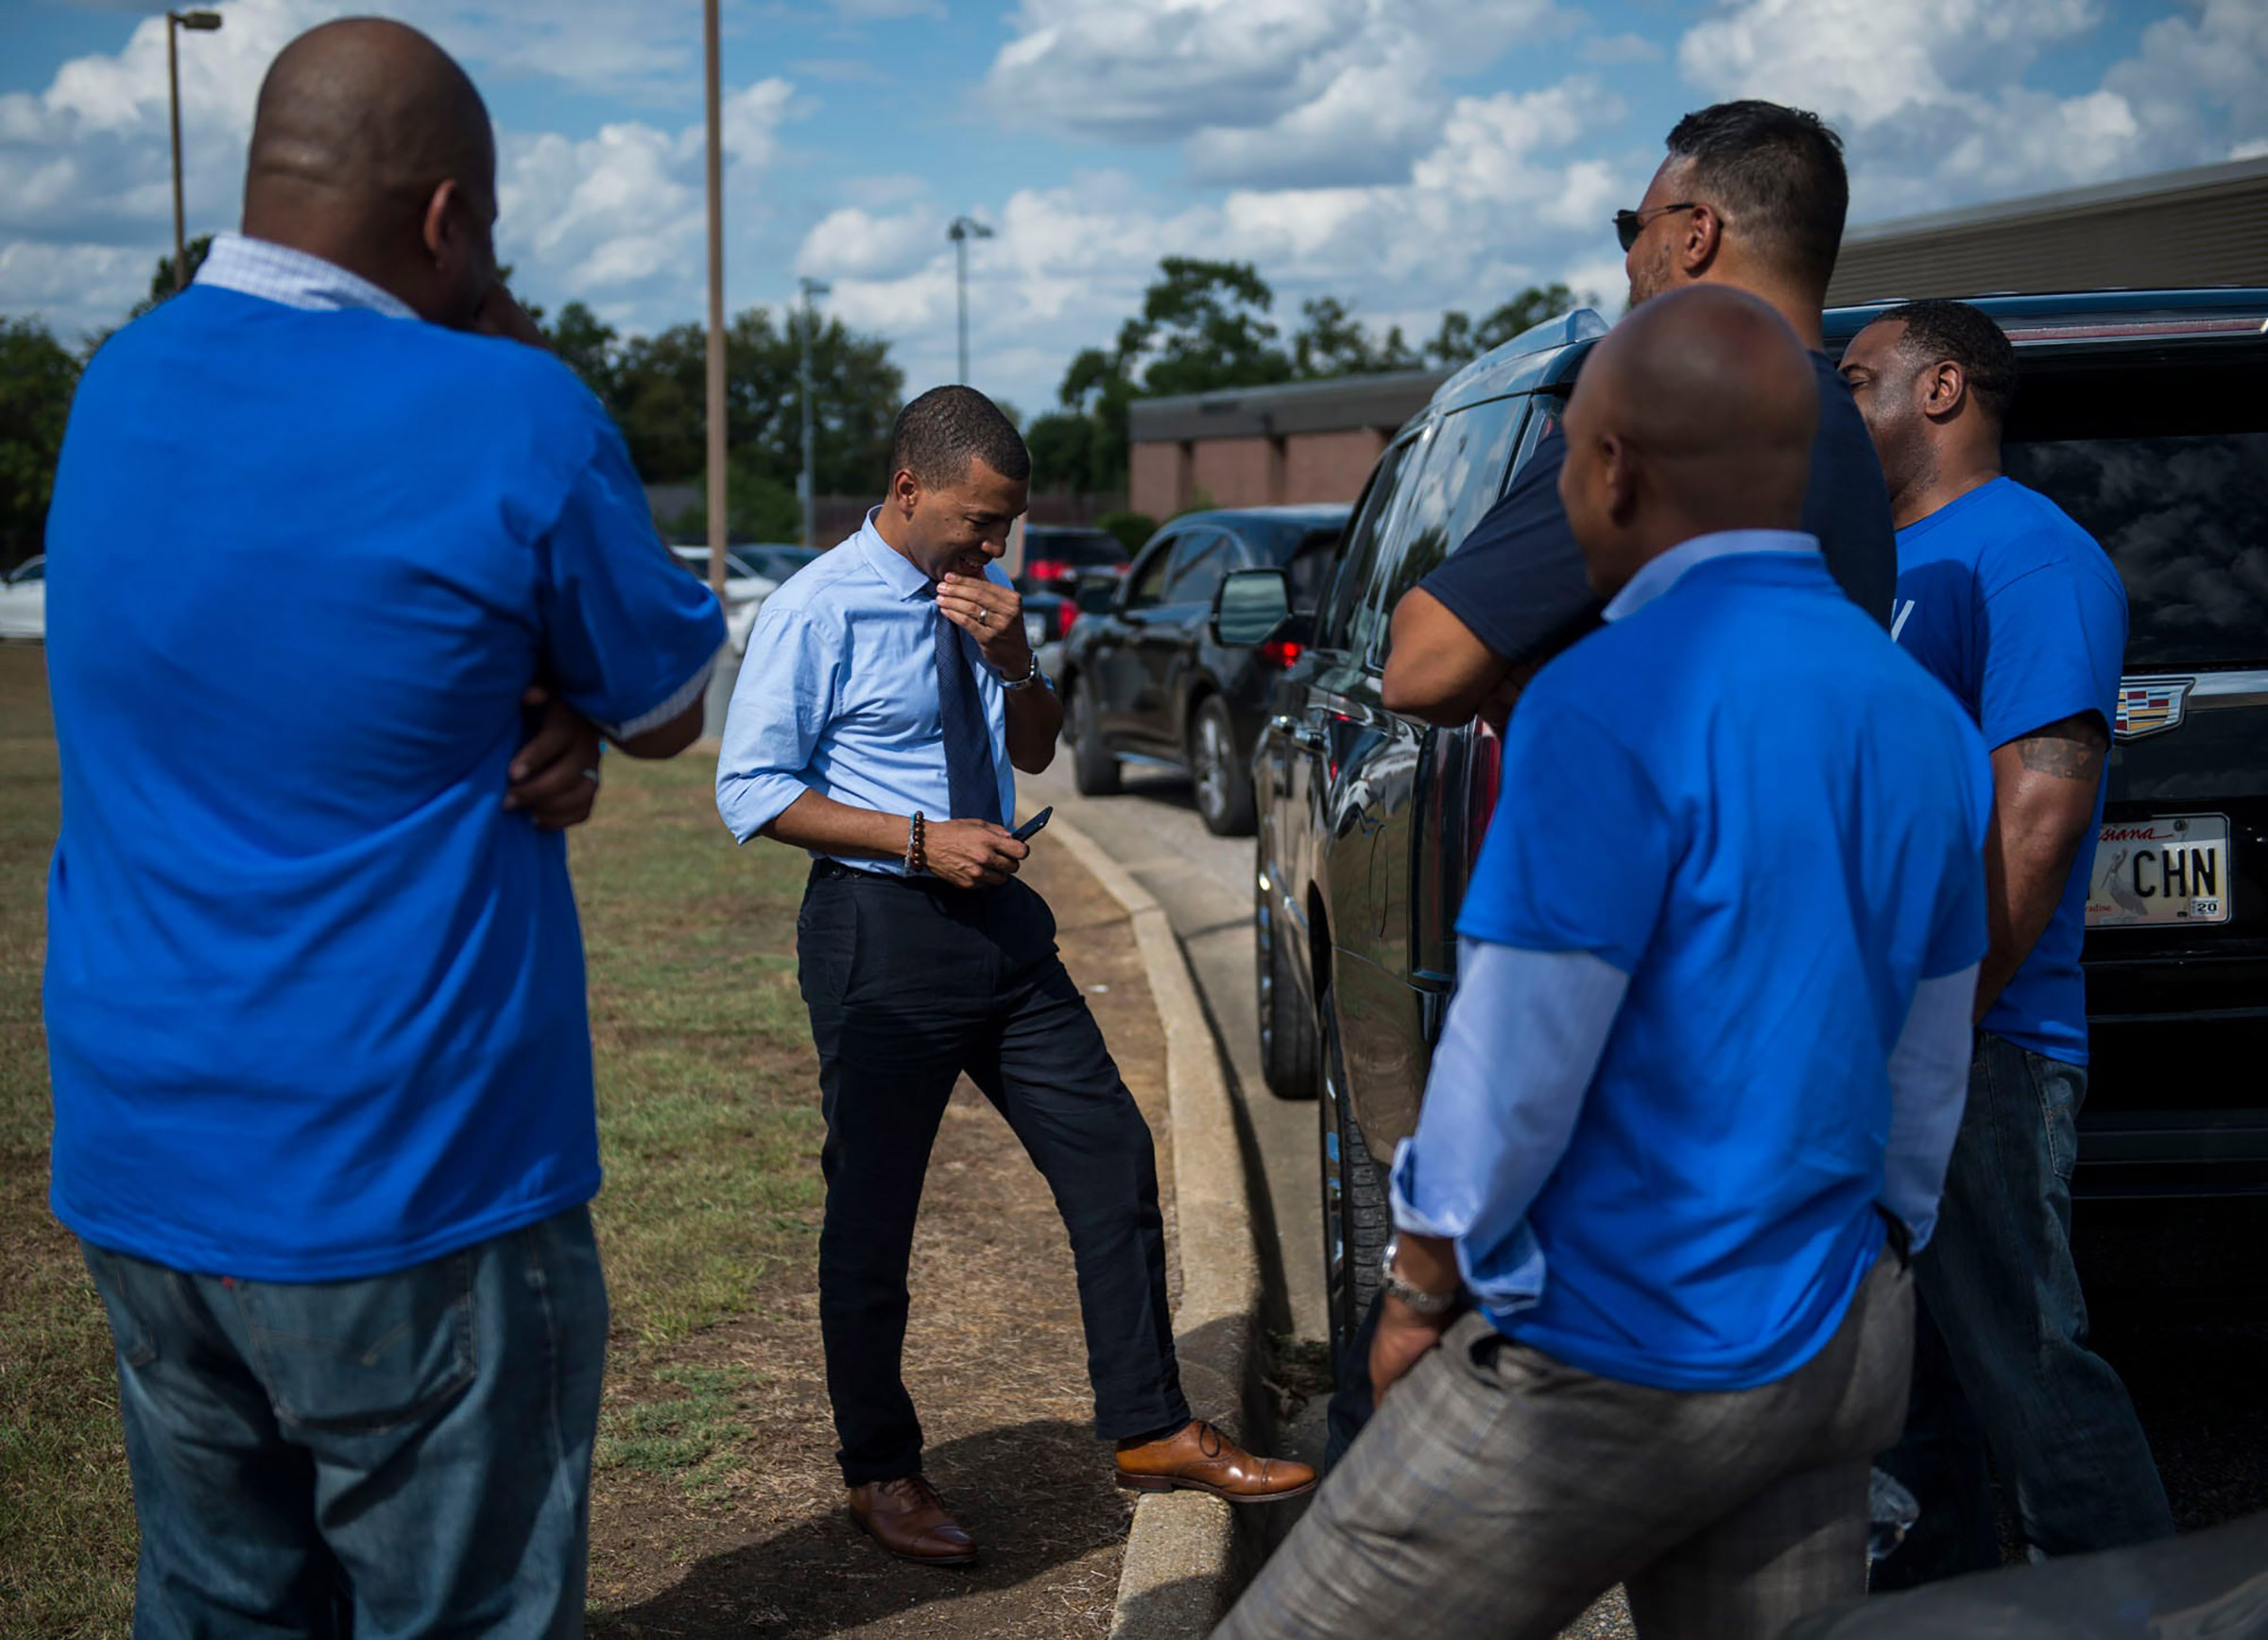 Mayoral candidate Steven Reed talks with his team at Southlawn Elementary School in Montgomery, Ala., on Oct. 8.